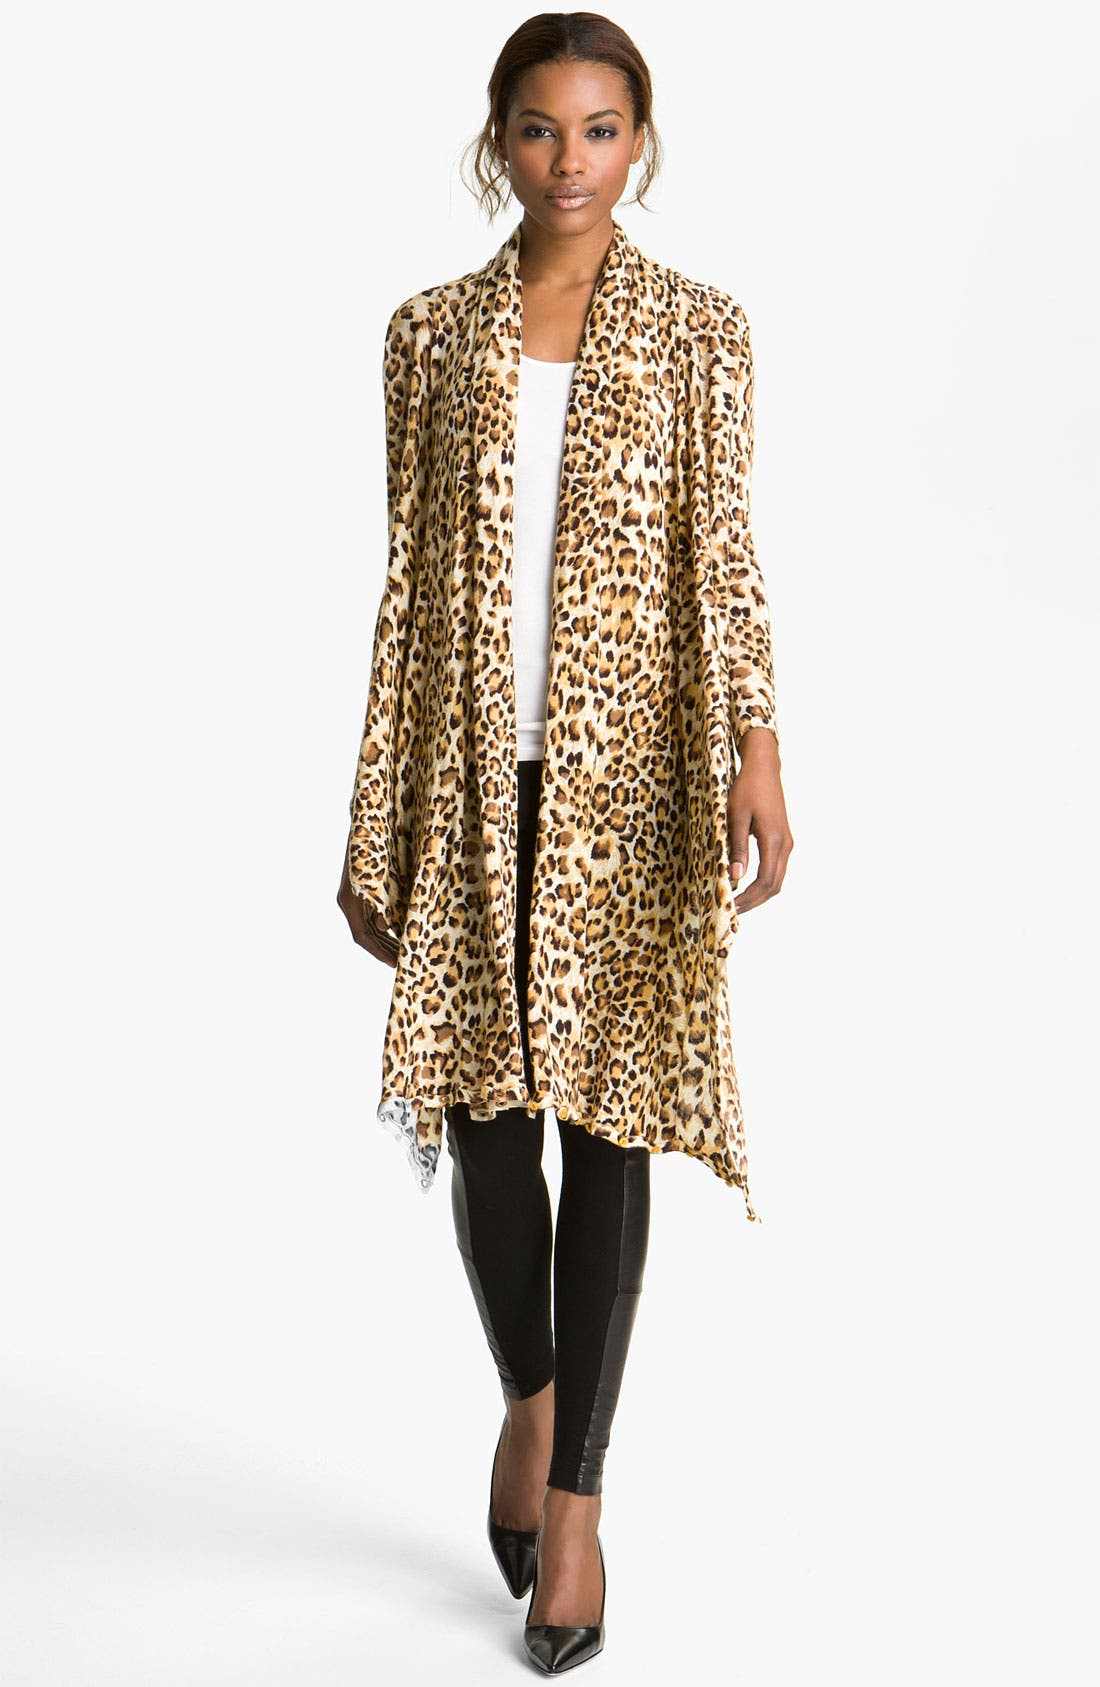 Alternate Image 1 Selected - Alice + Olivia 'Saria' Leopard Print Open Front Cardigan